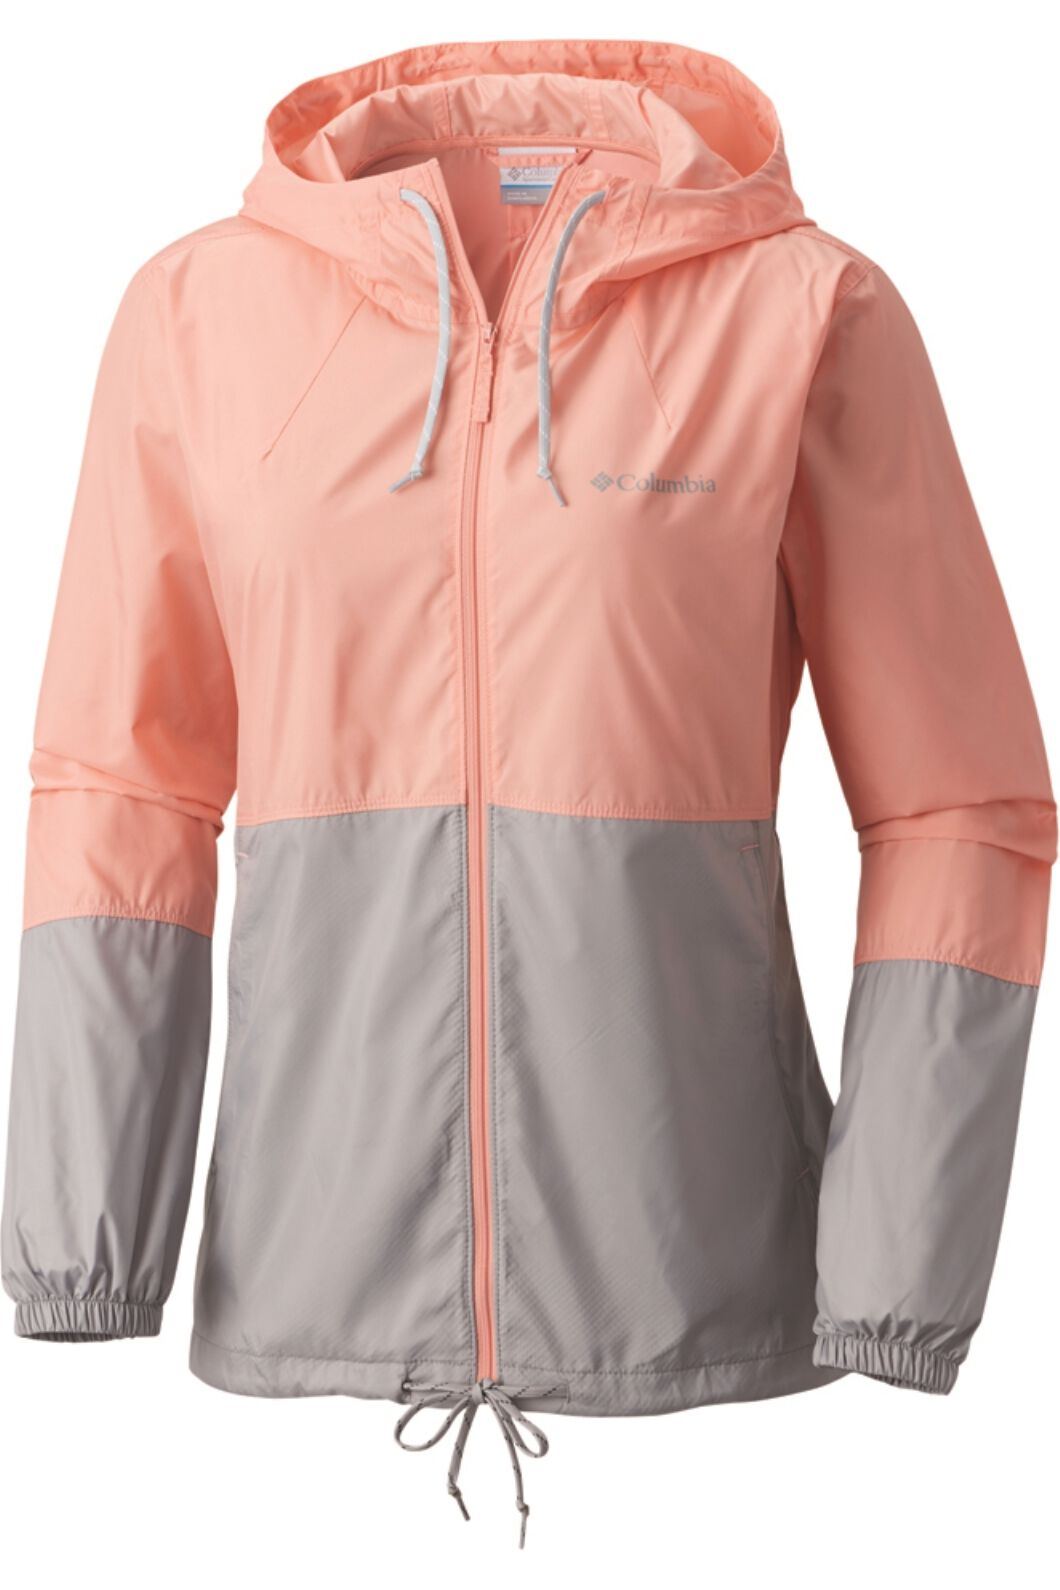 new product a5360 b202c Columbia Women s Flash Forward Windbreaker Jacket NocturnalSand,  SORBET GREY, ...